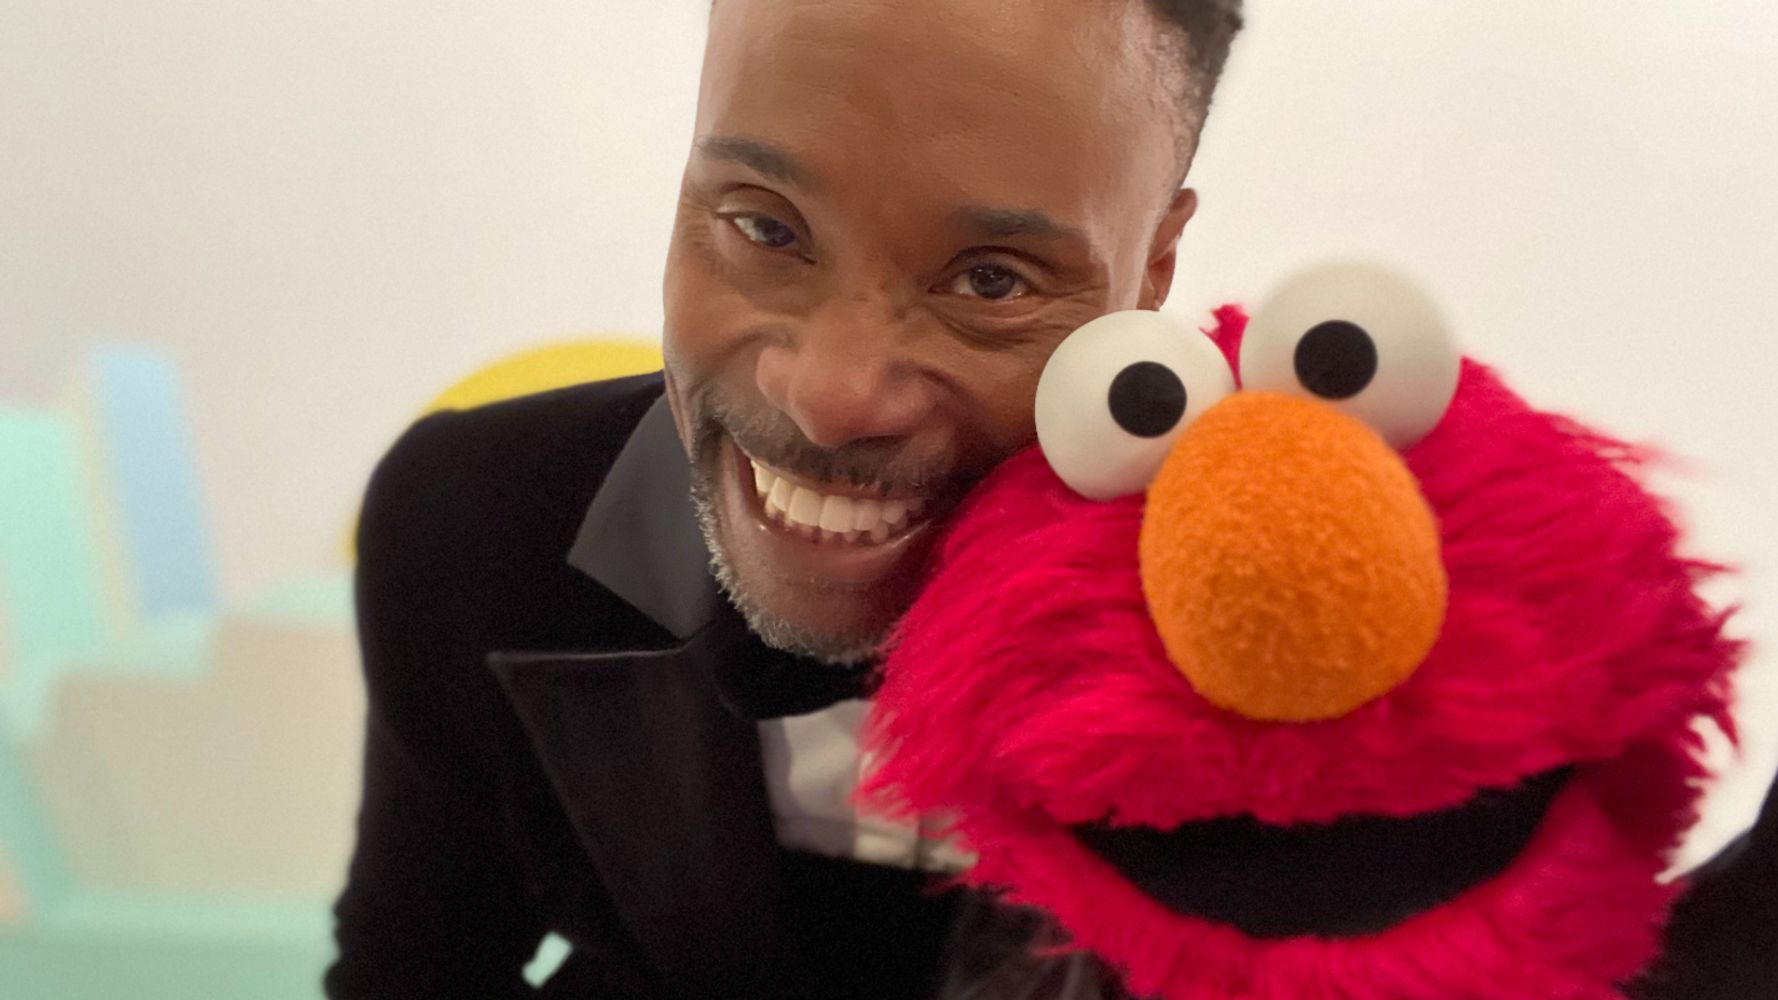 Westlake Legal Group 5e34935c1f0000fd0a85aafc Billy Porter To Swing By 'Sesame Street' In His Oscars Tuxedo Dress